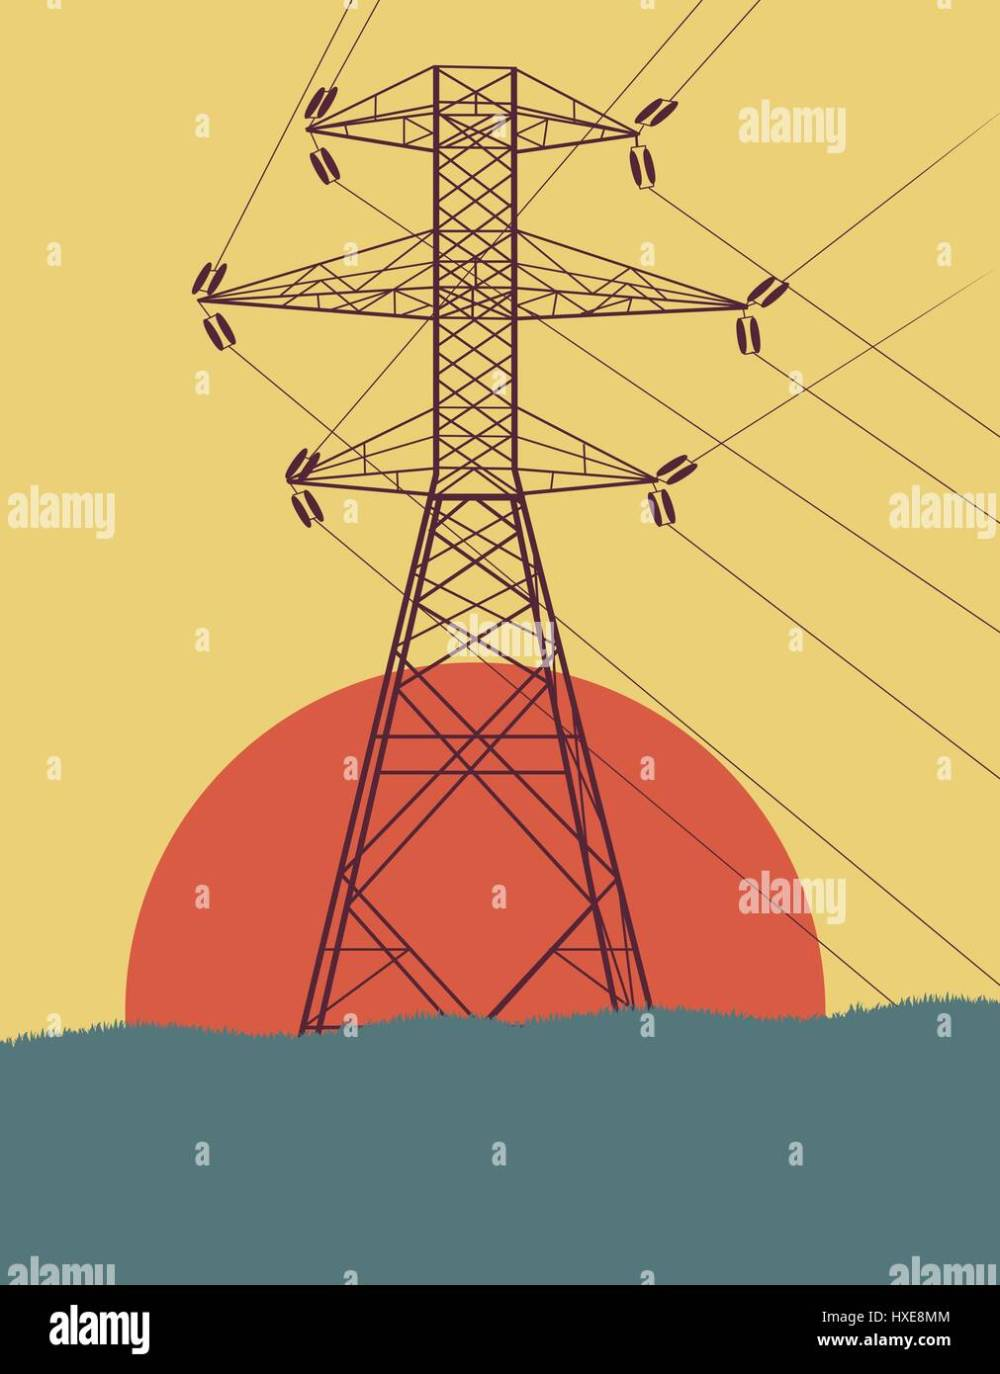 medium resolution of energy distribution high voltage power line tower with wires vector background